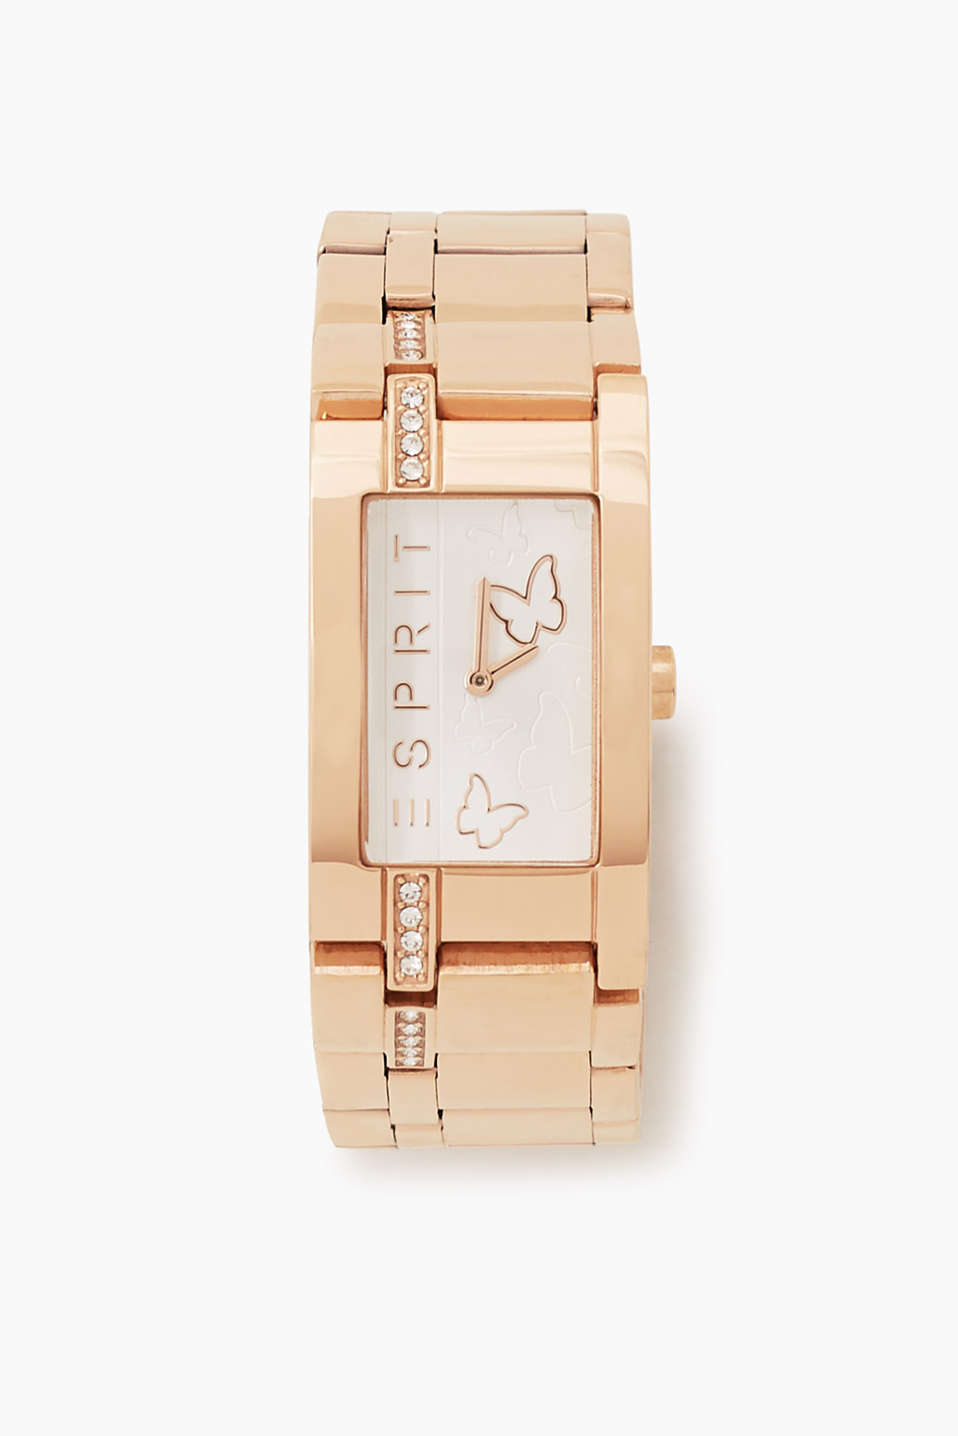 An ESPRIT classic in trendy pink gold: bracelet watch with a square casing